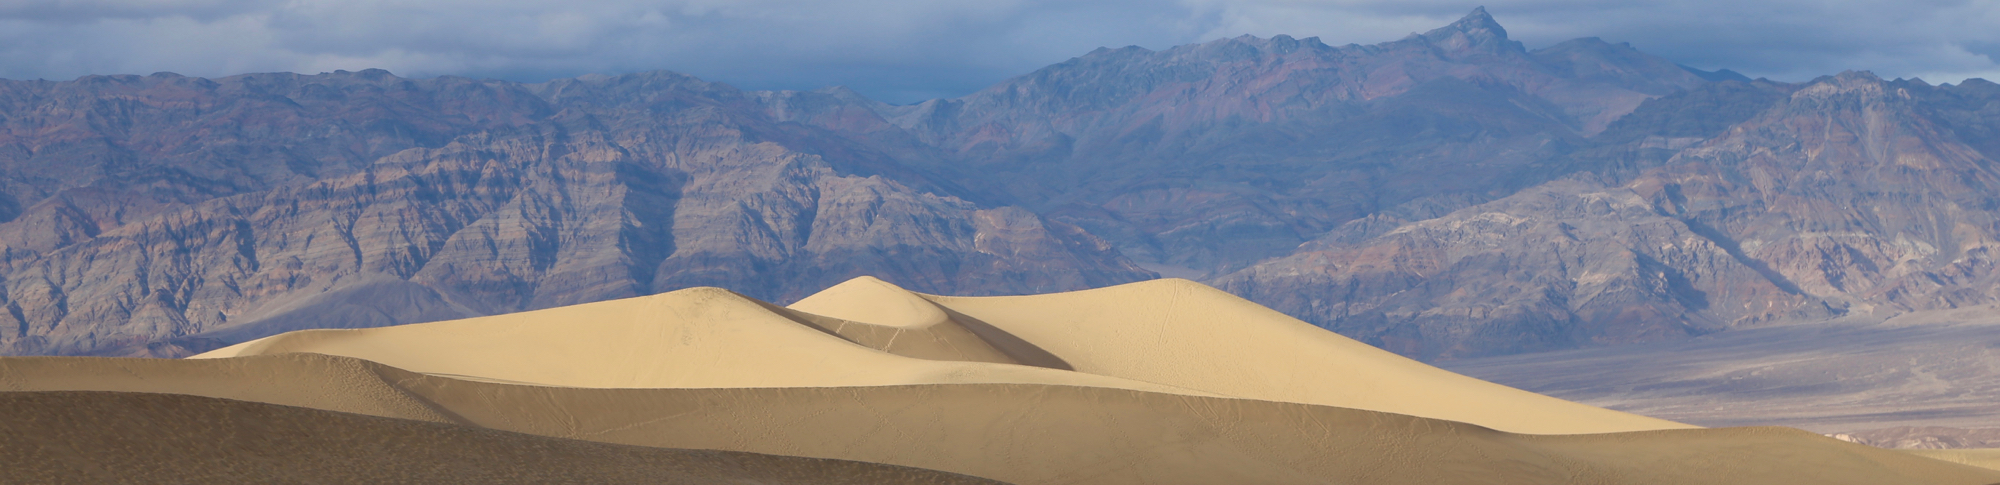 Death Valley National Park Sand Dunes Panorama